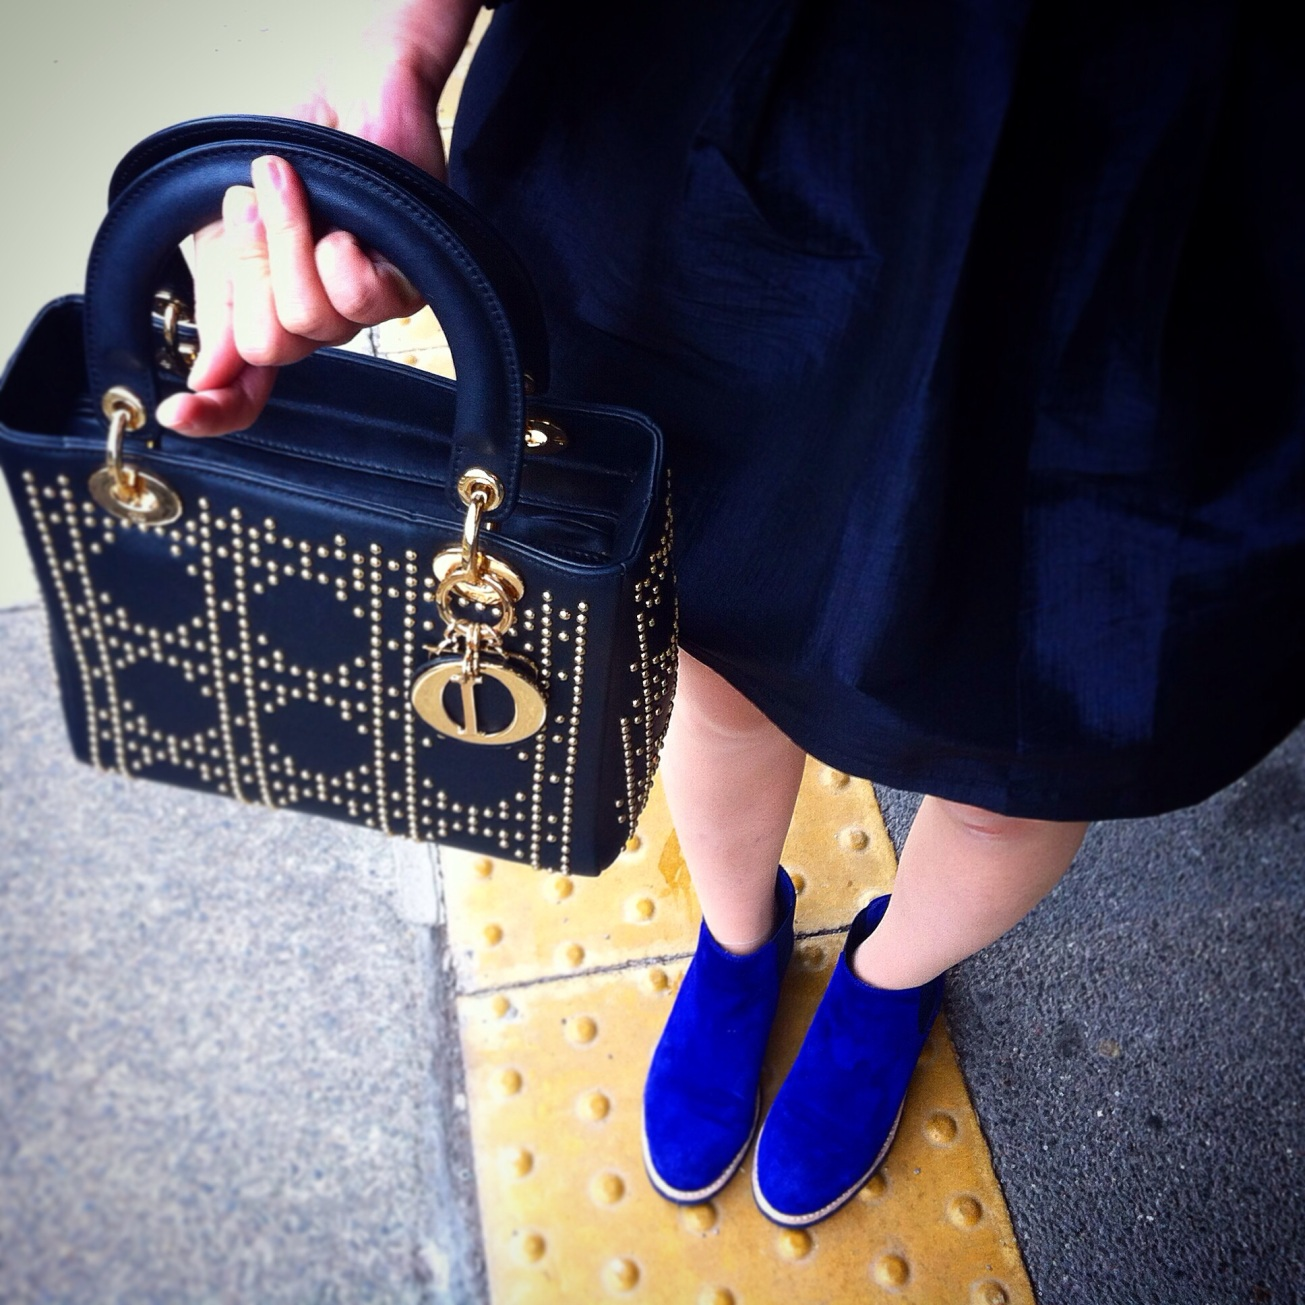 Studded Dior and blue suede boots by Accessorize All Areas